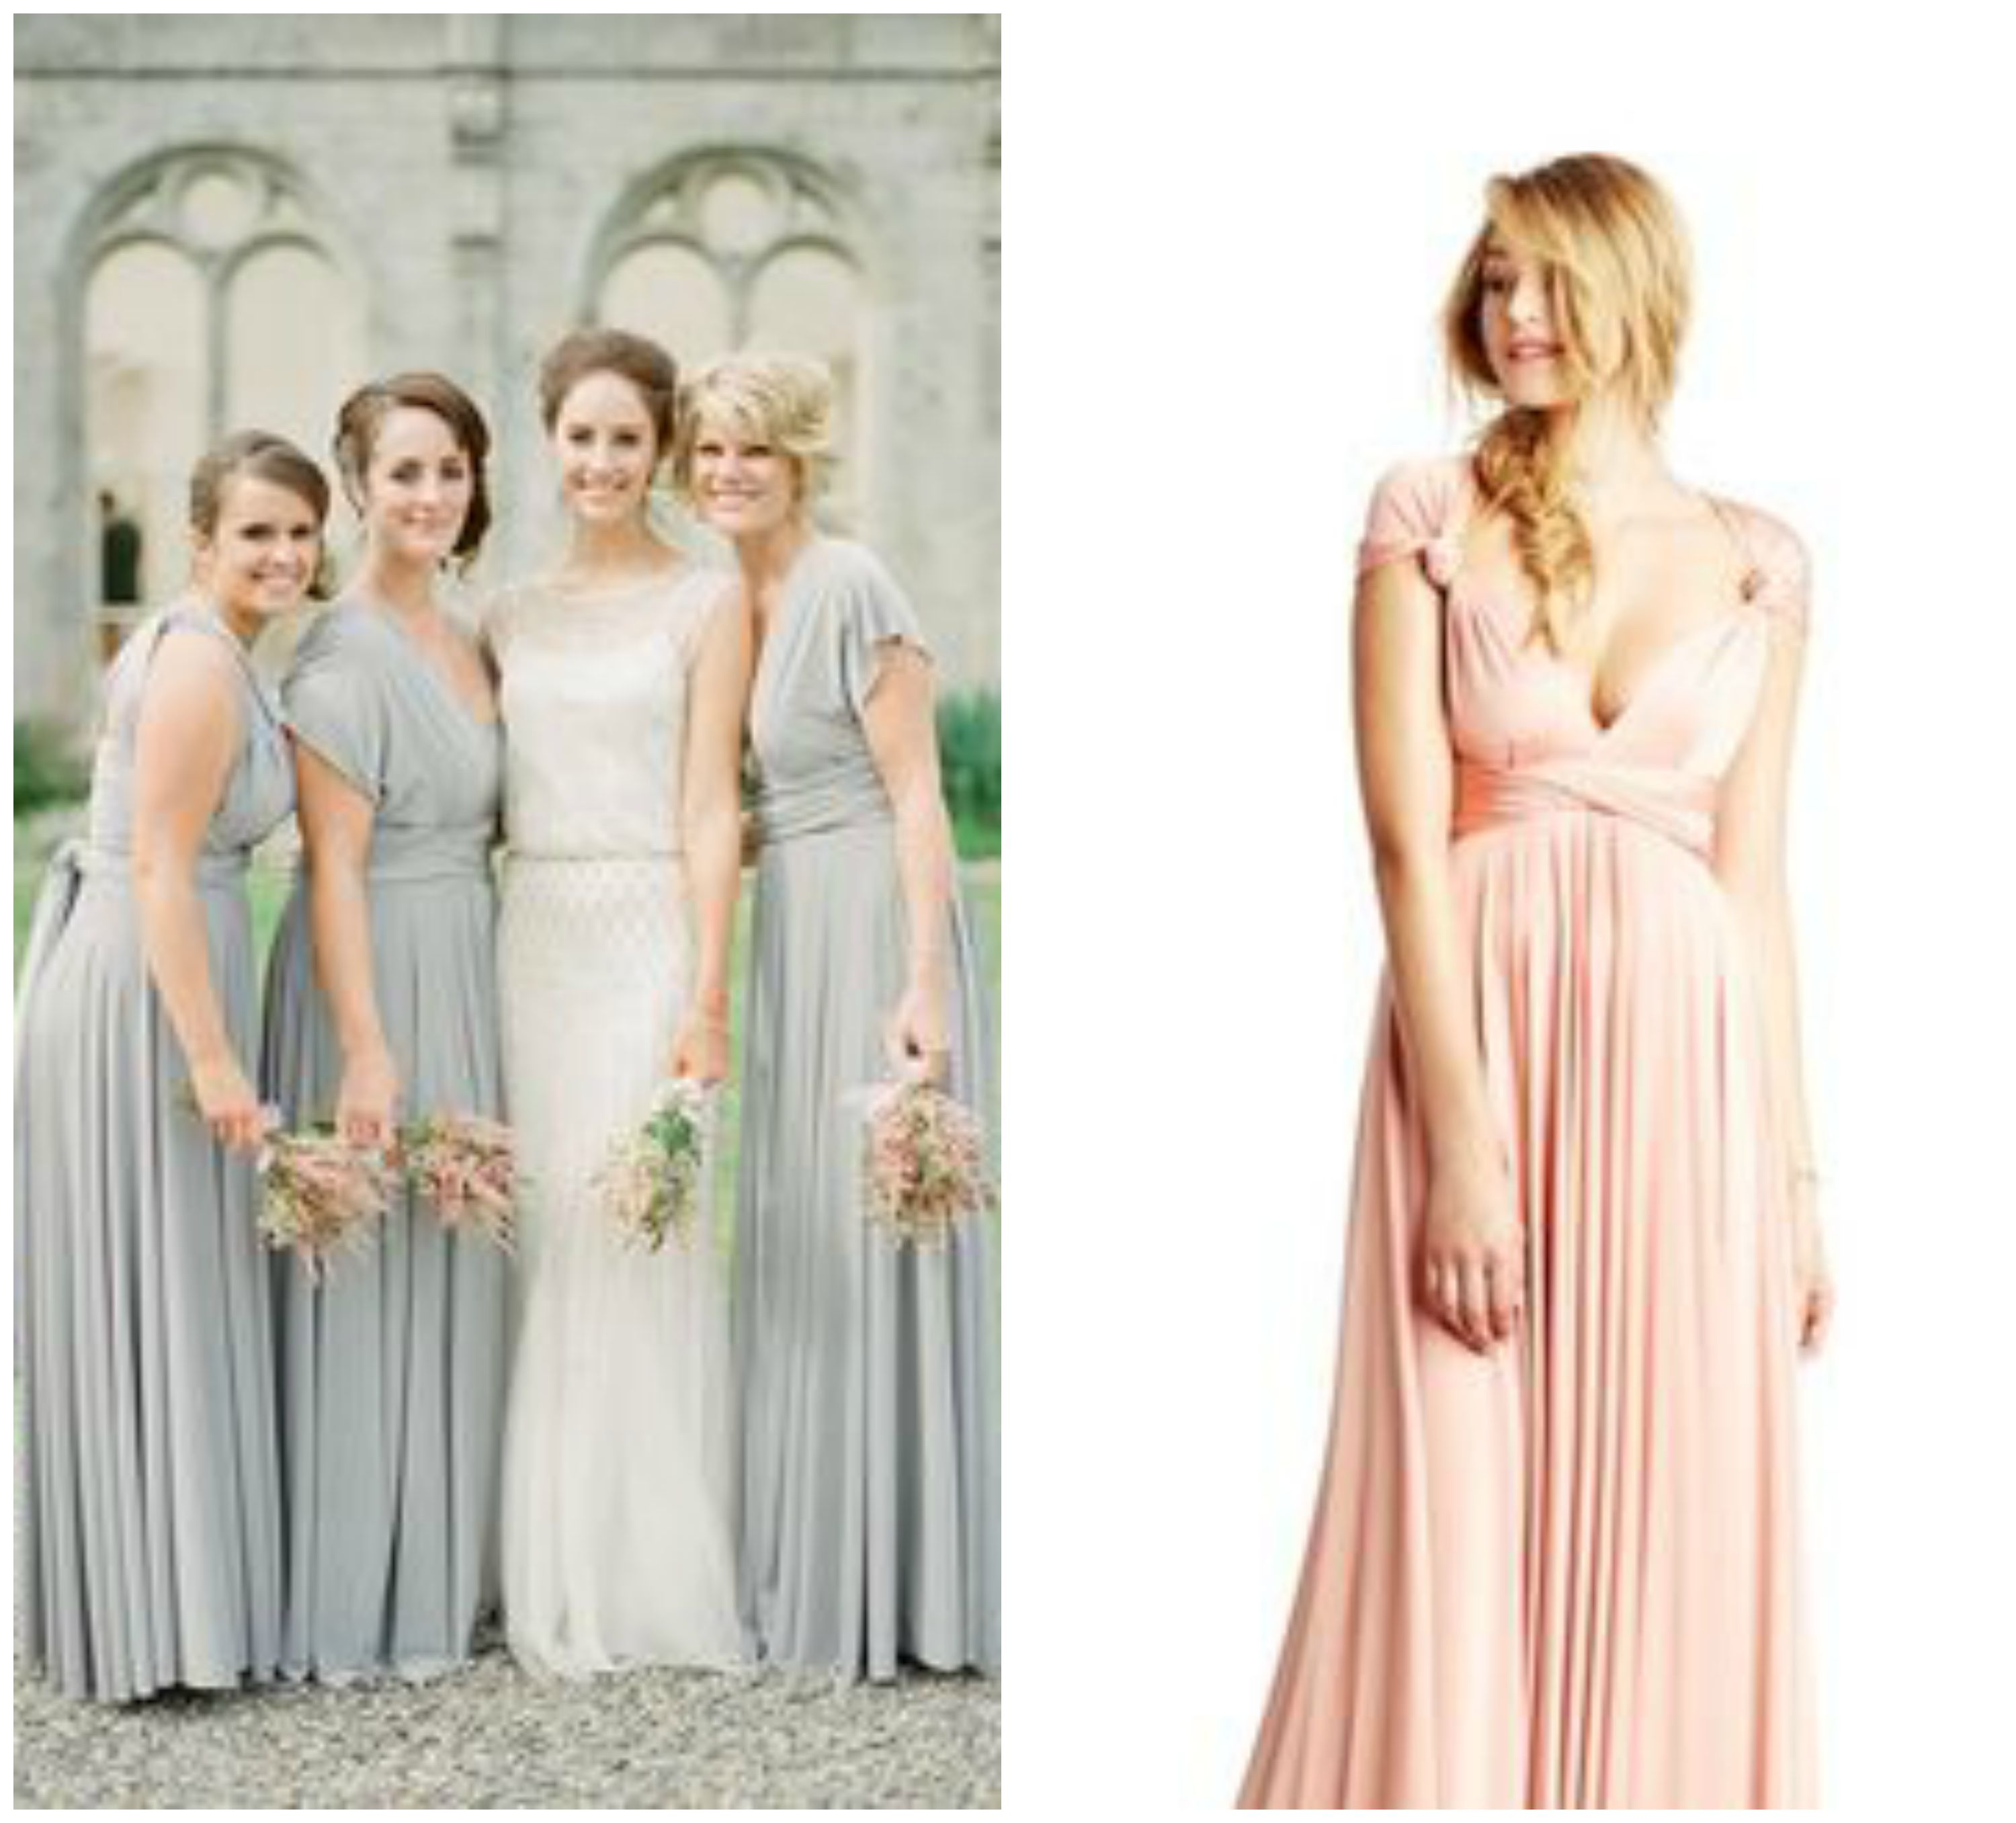 Charmant Two Color Bridesmaid Dresses Zeitgenössisch - Brautkleider ...